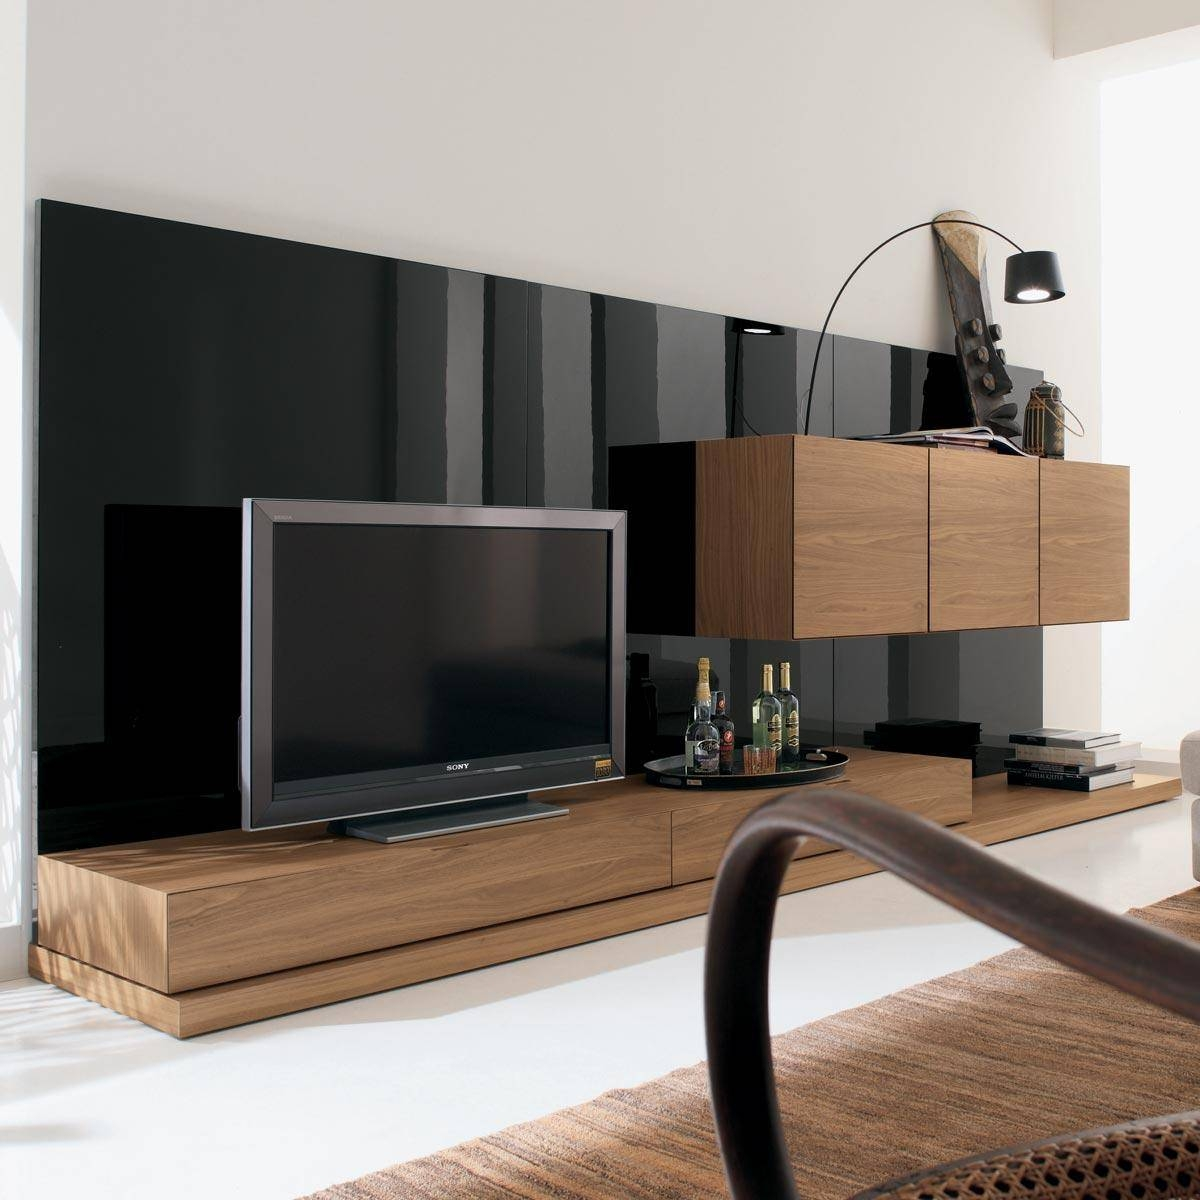 Choosing A Tv Stand That Will Suit Your Home - La Furniture Blog within Telly Tv Stands (Image 10 of 15)